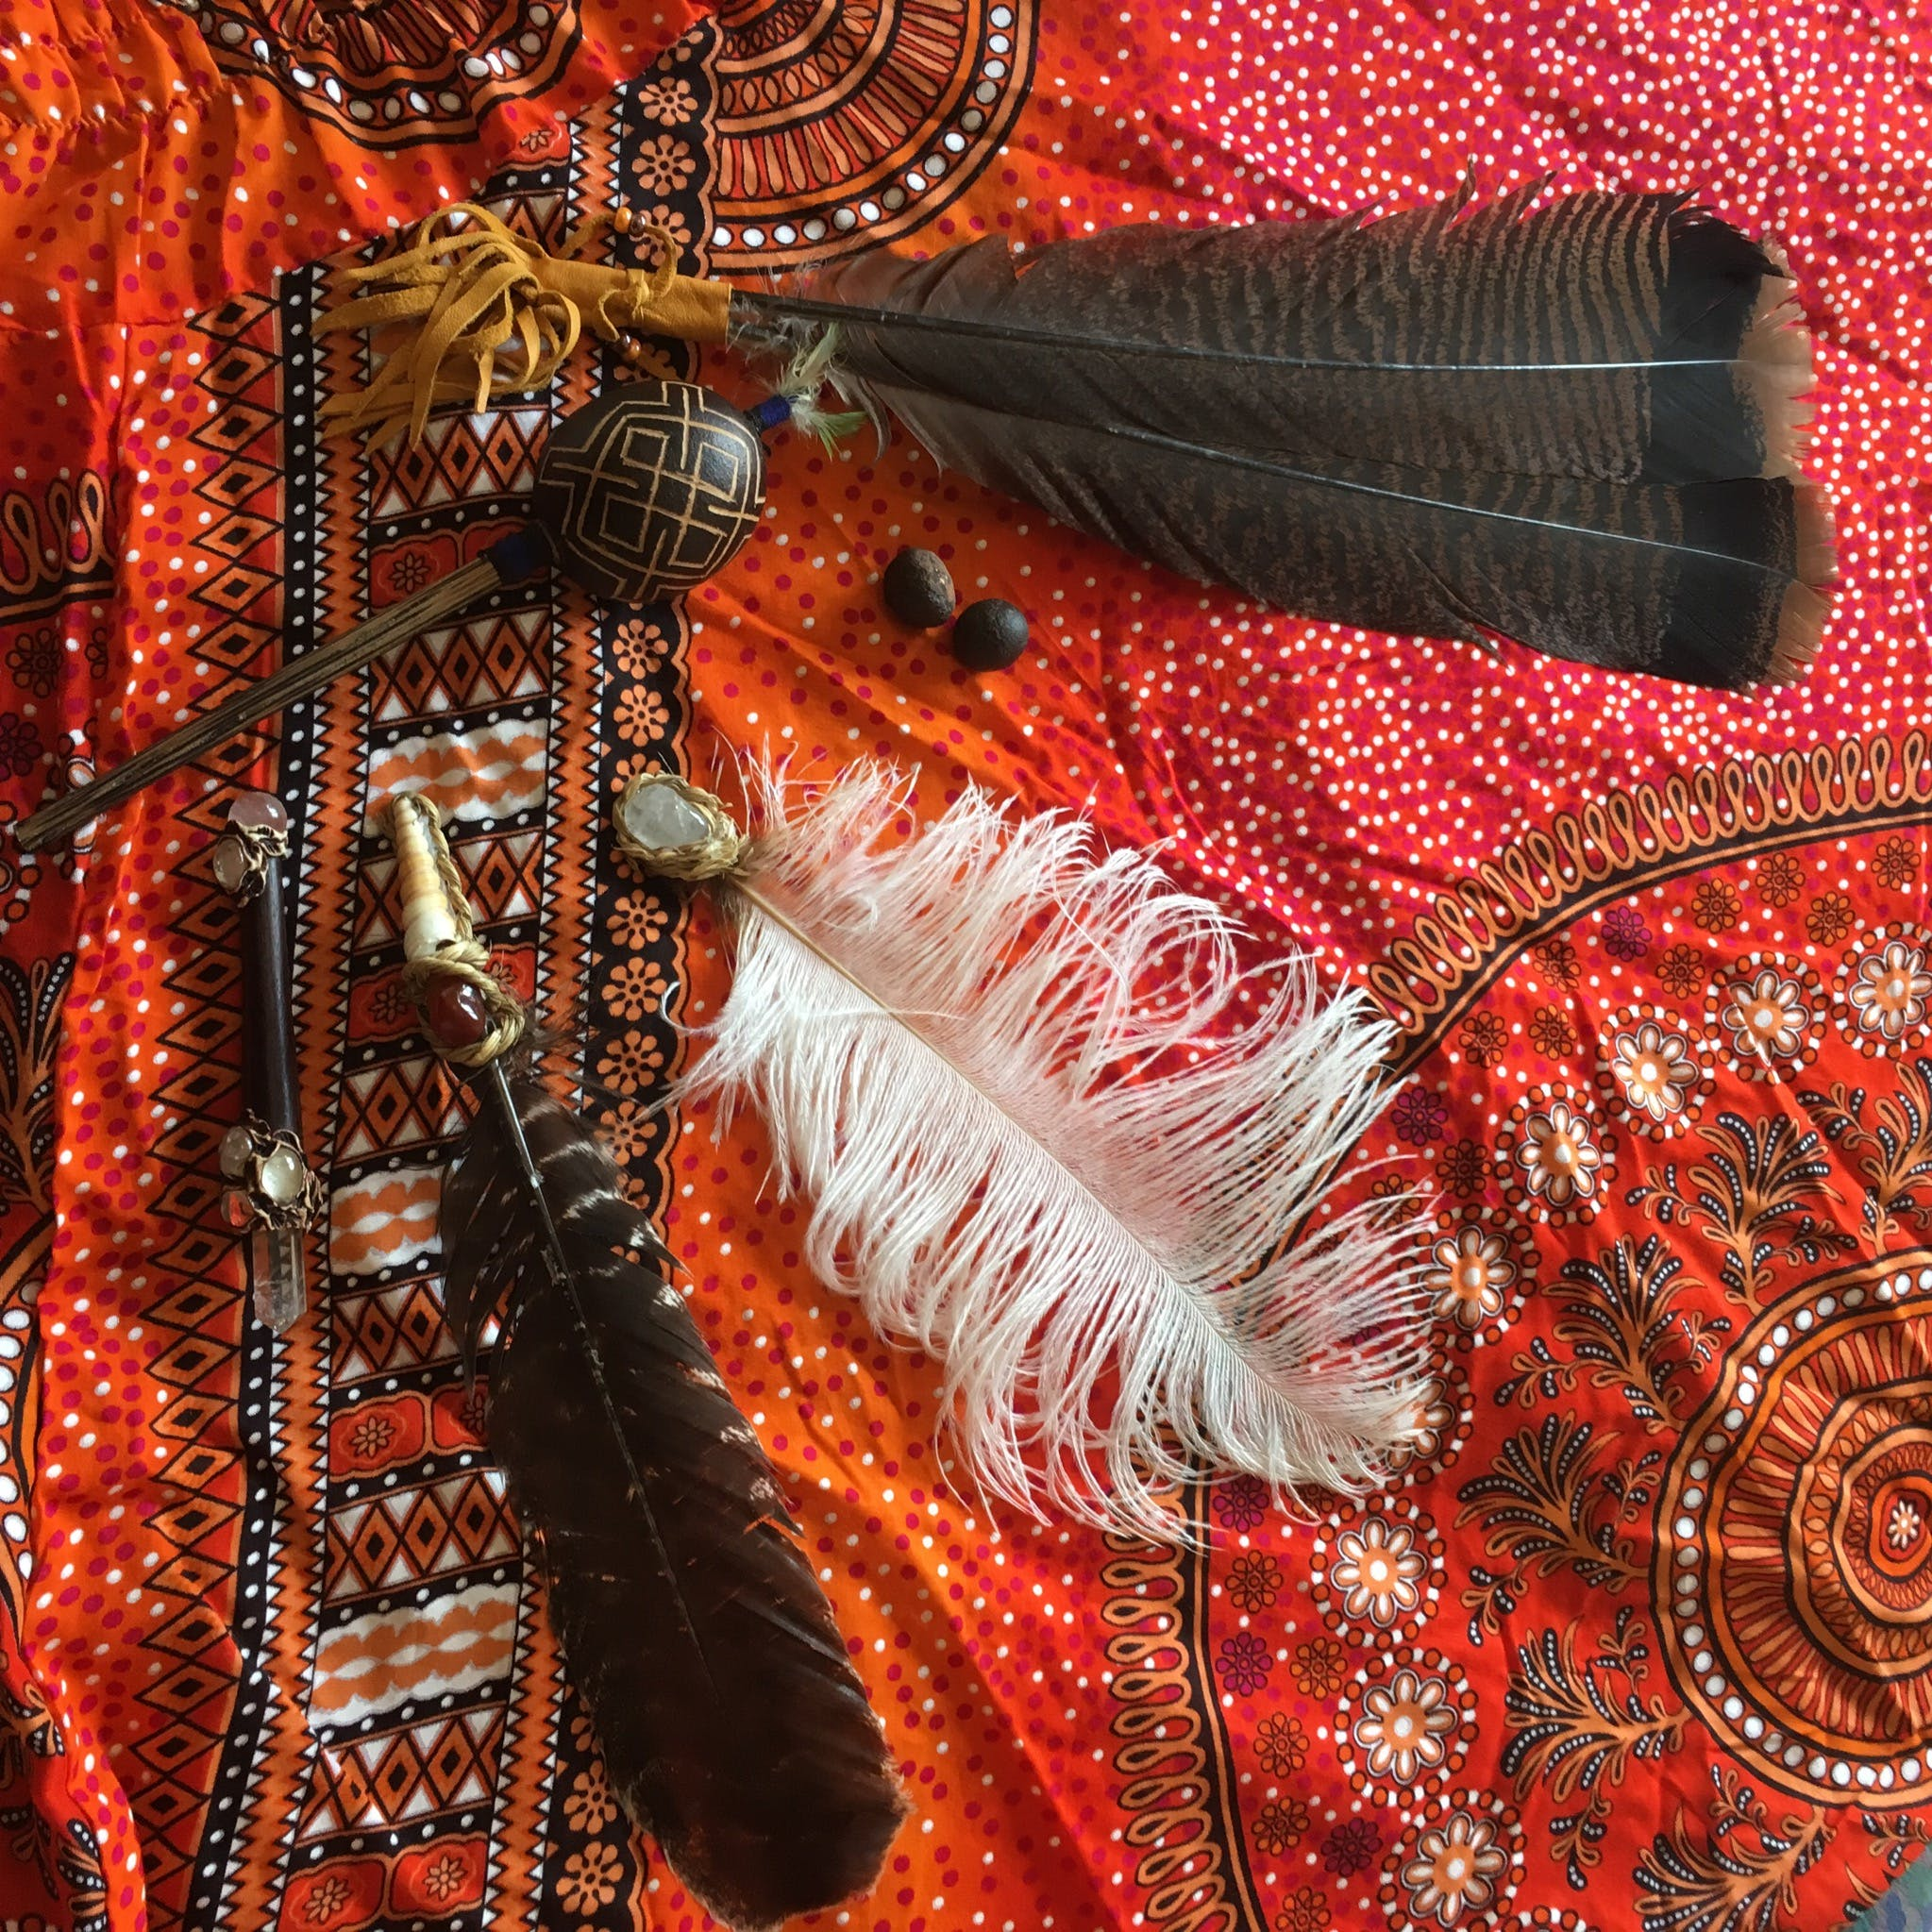 Brown, Black, and White Feather Accessories